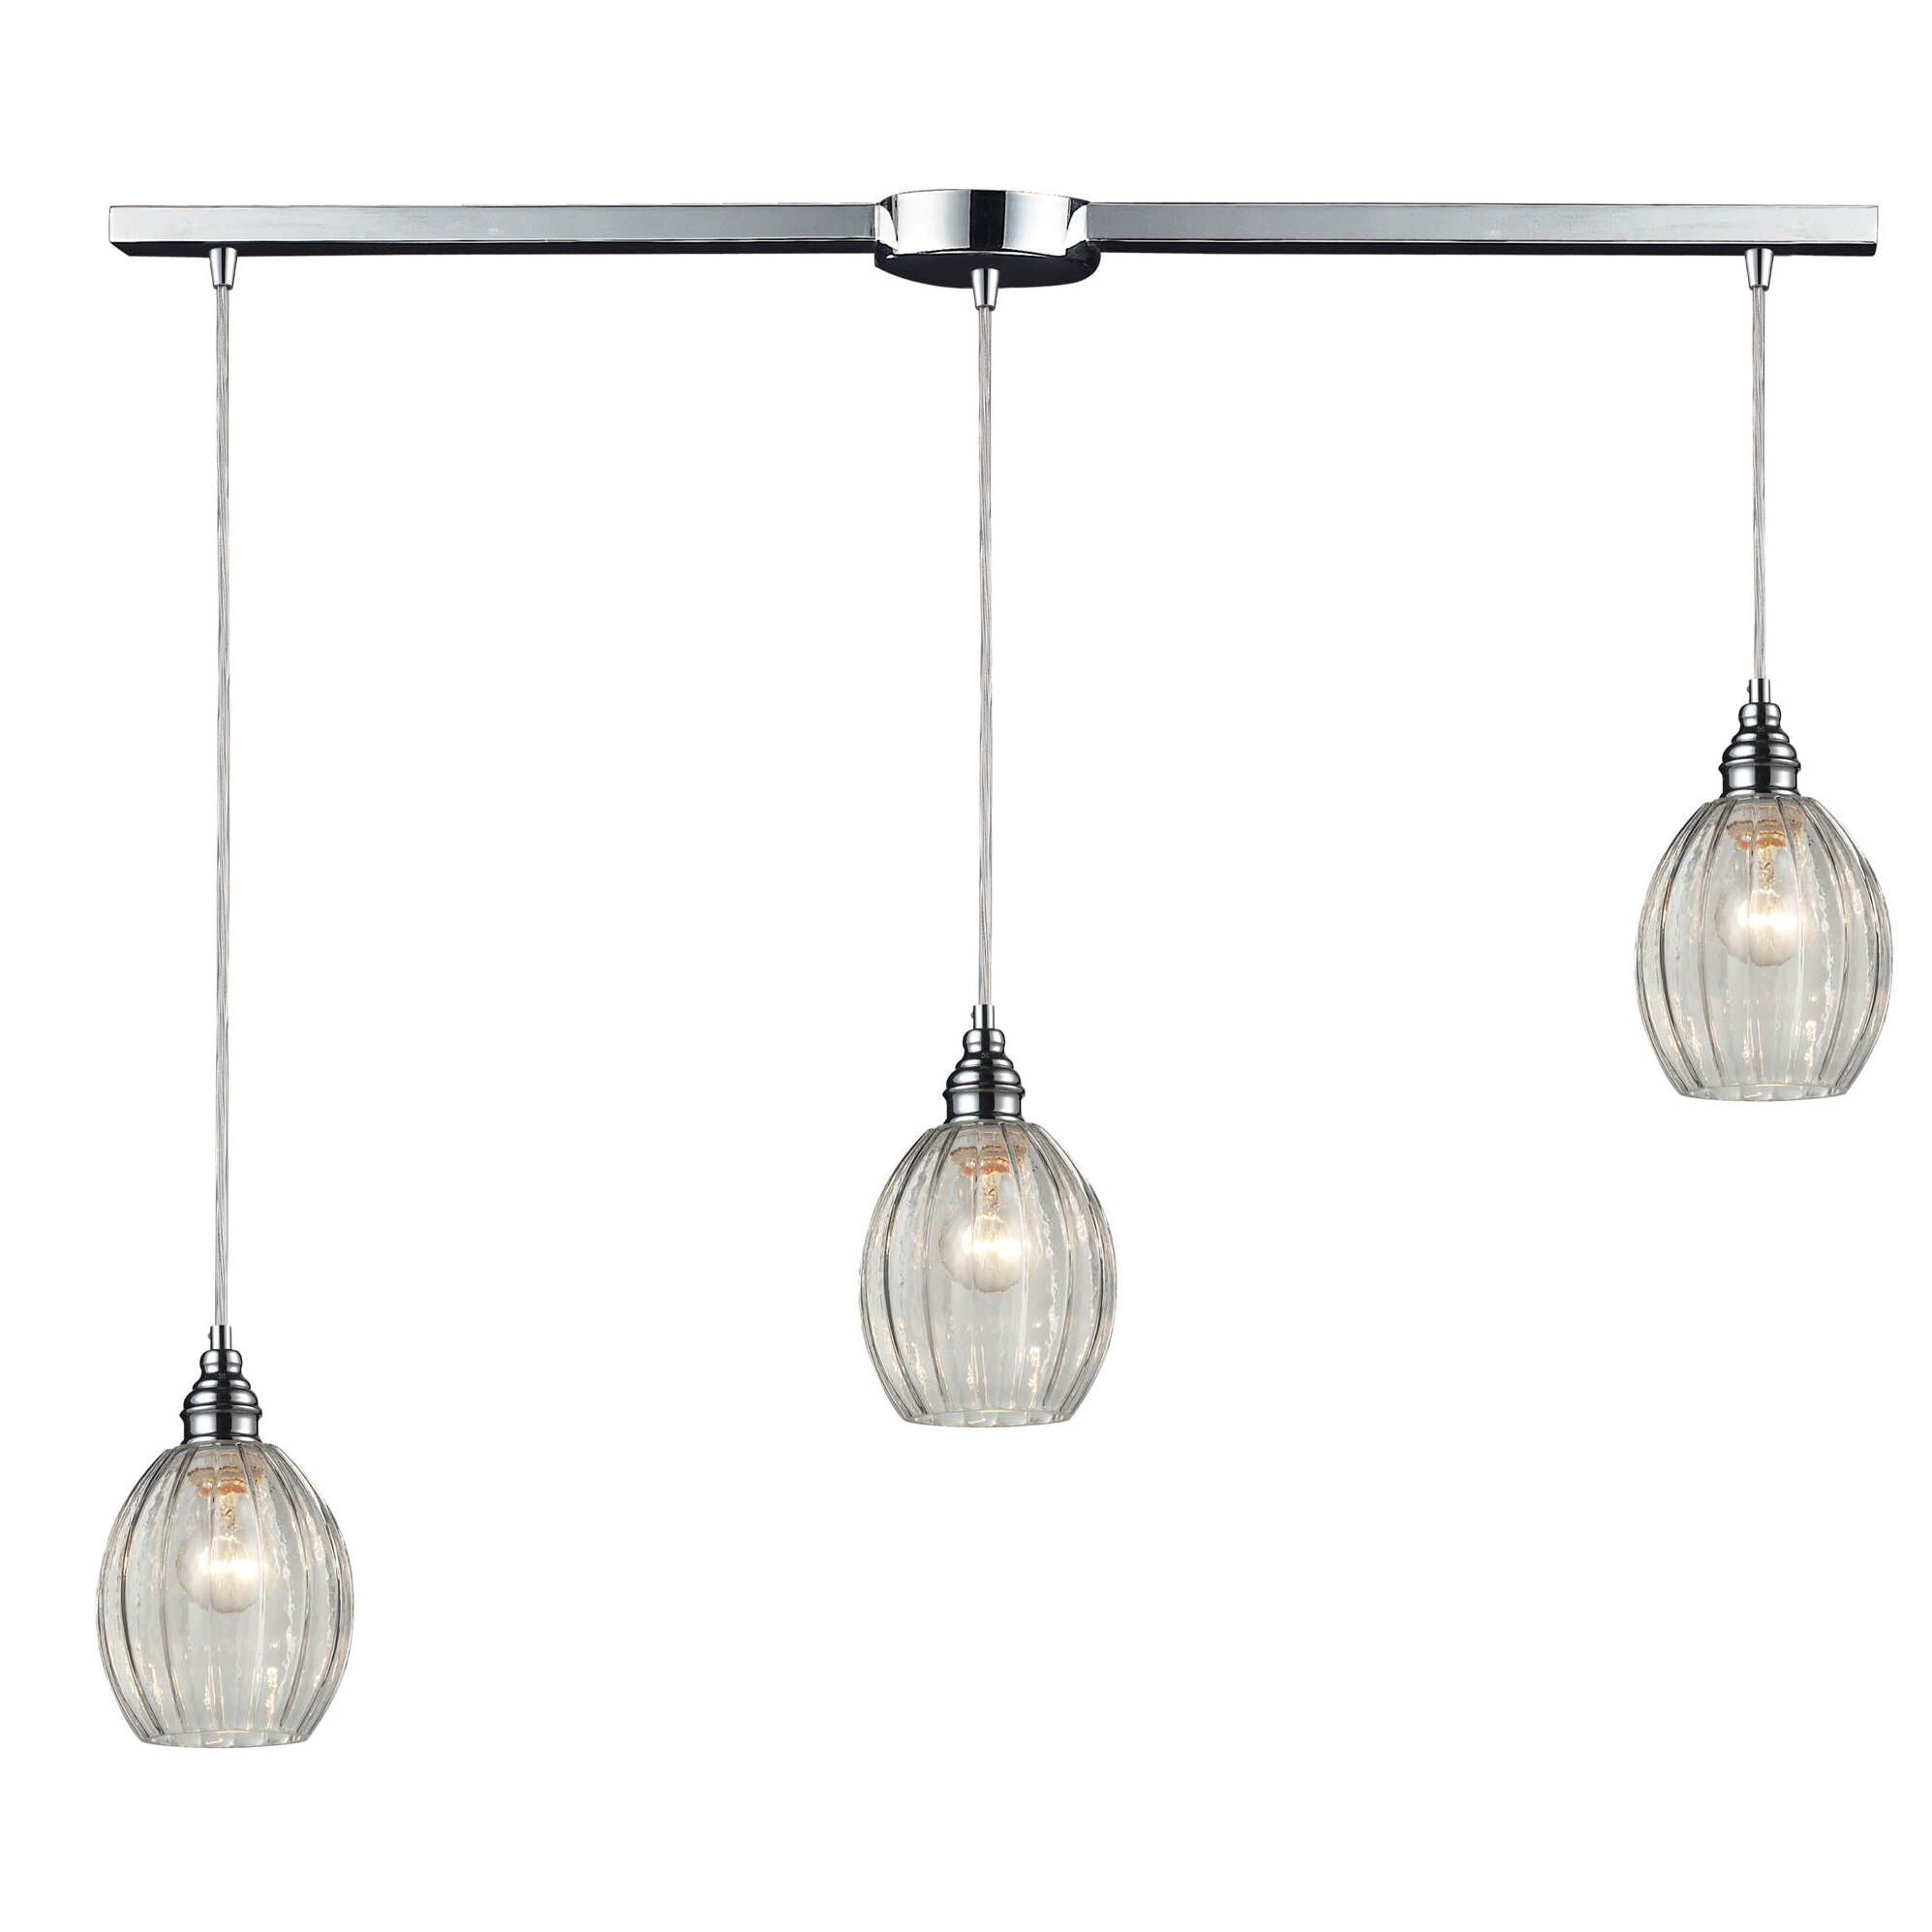 Laurel foundry modern farmhouse orofino 3 light kitchen for Modern island pendant lighting